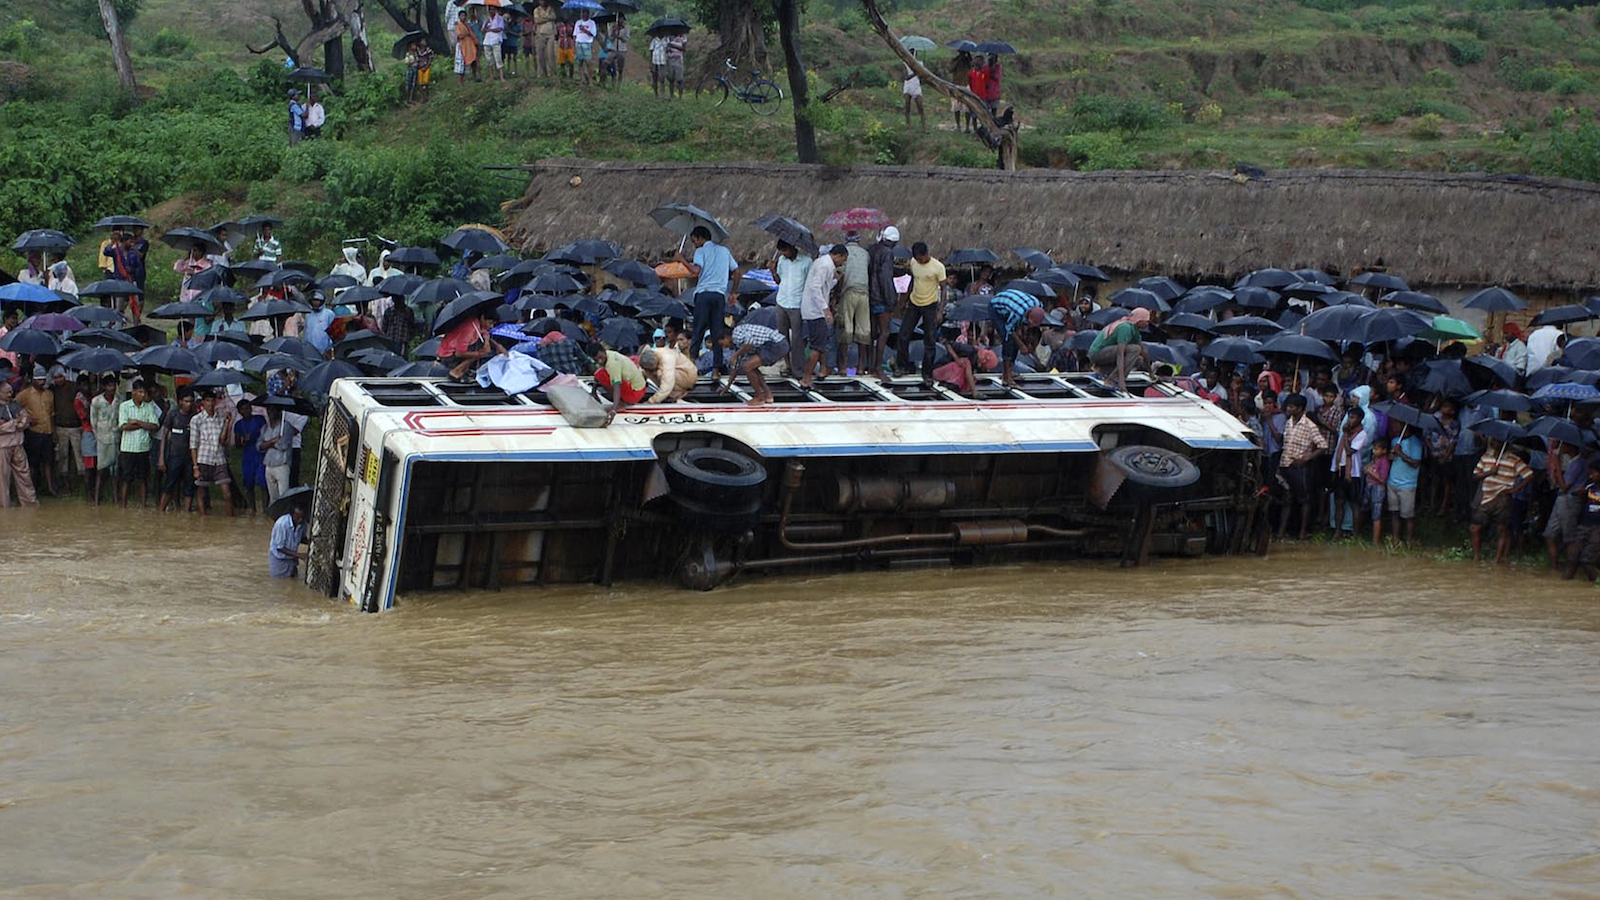 Onlookers stand next to an overturned passenger bus that was washed away by flash floods in Bankura district of the eastern Indian state of West Bengal September 6, 2012. A bus carrying about 50 passengers was washed away by flash floods with 45 passengers rescued while the rest are still missing, local media reported.